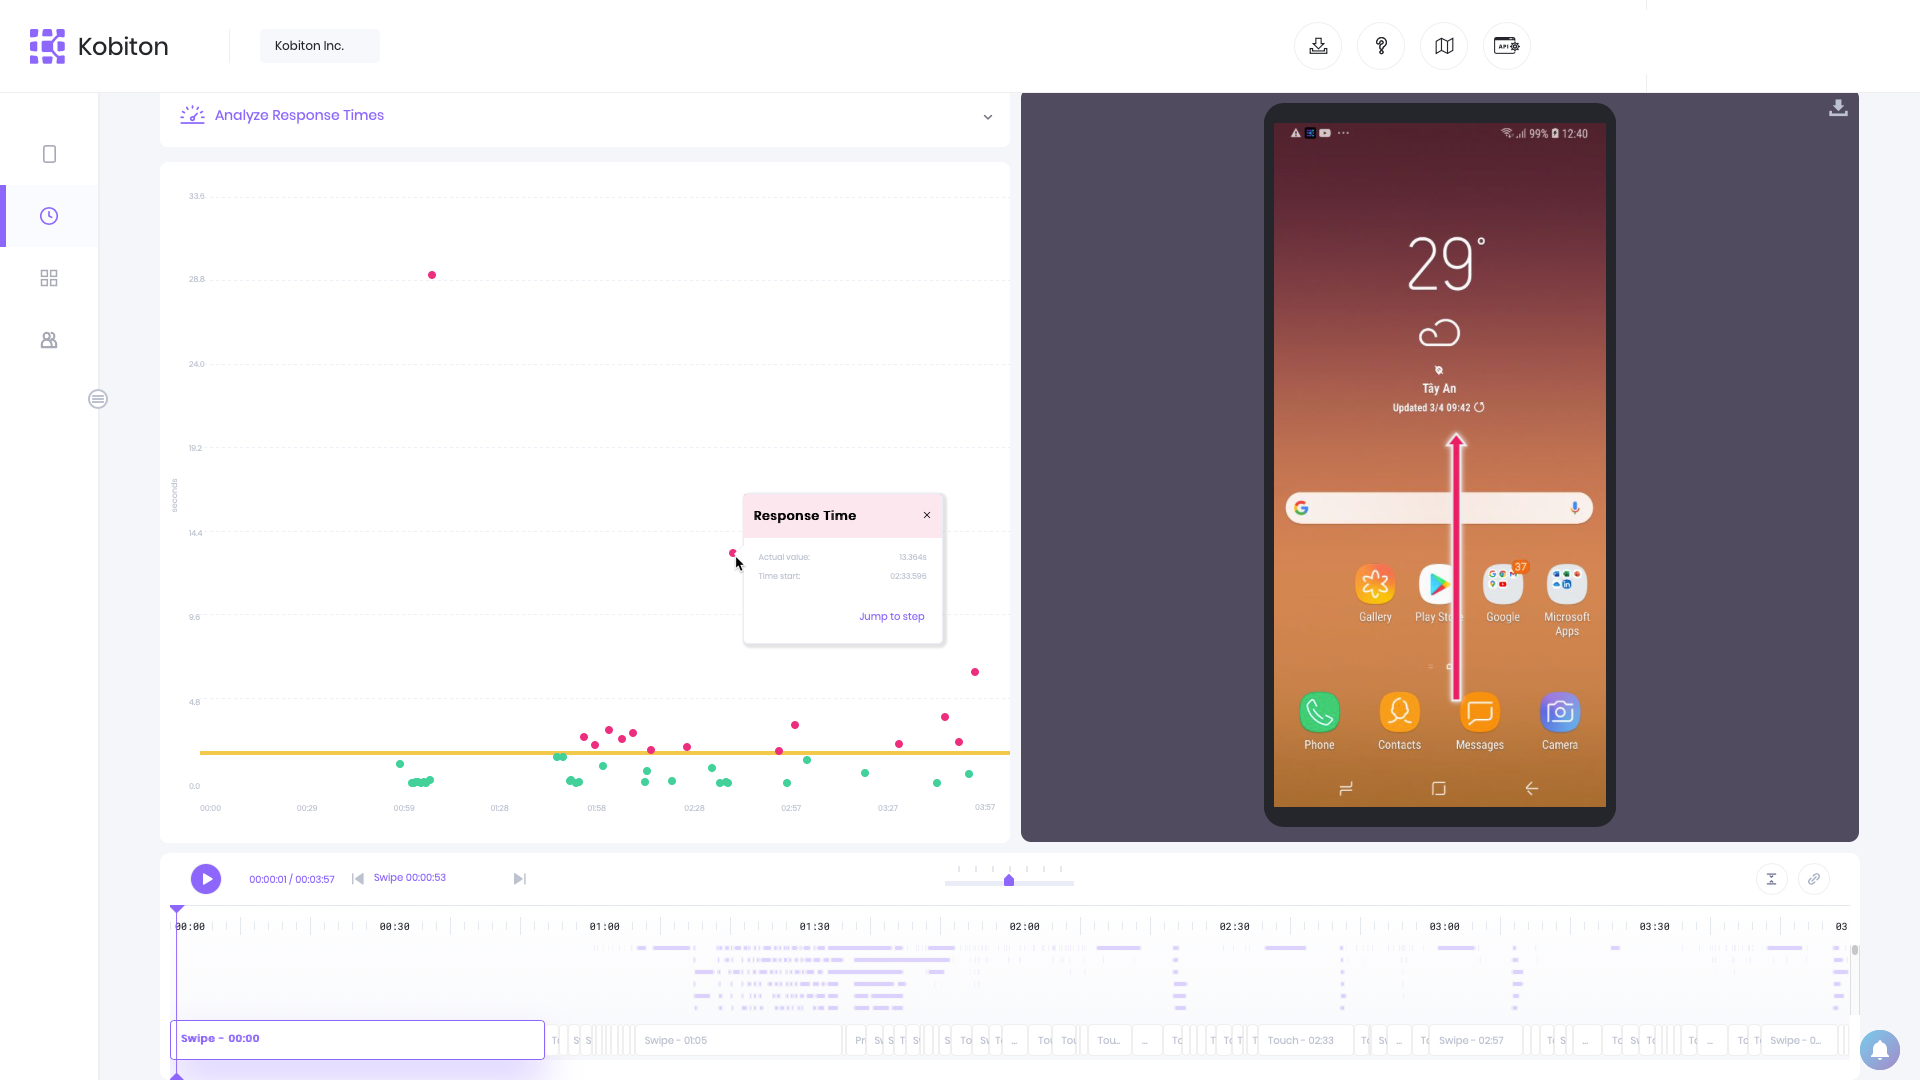 March 2021 Kobiton Product Update: New iOS support, response time in the Session Explorer, & more